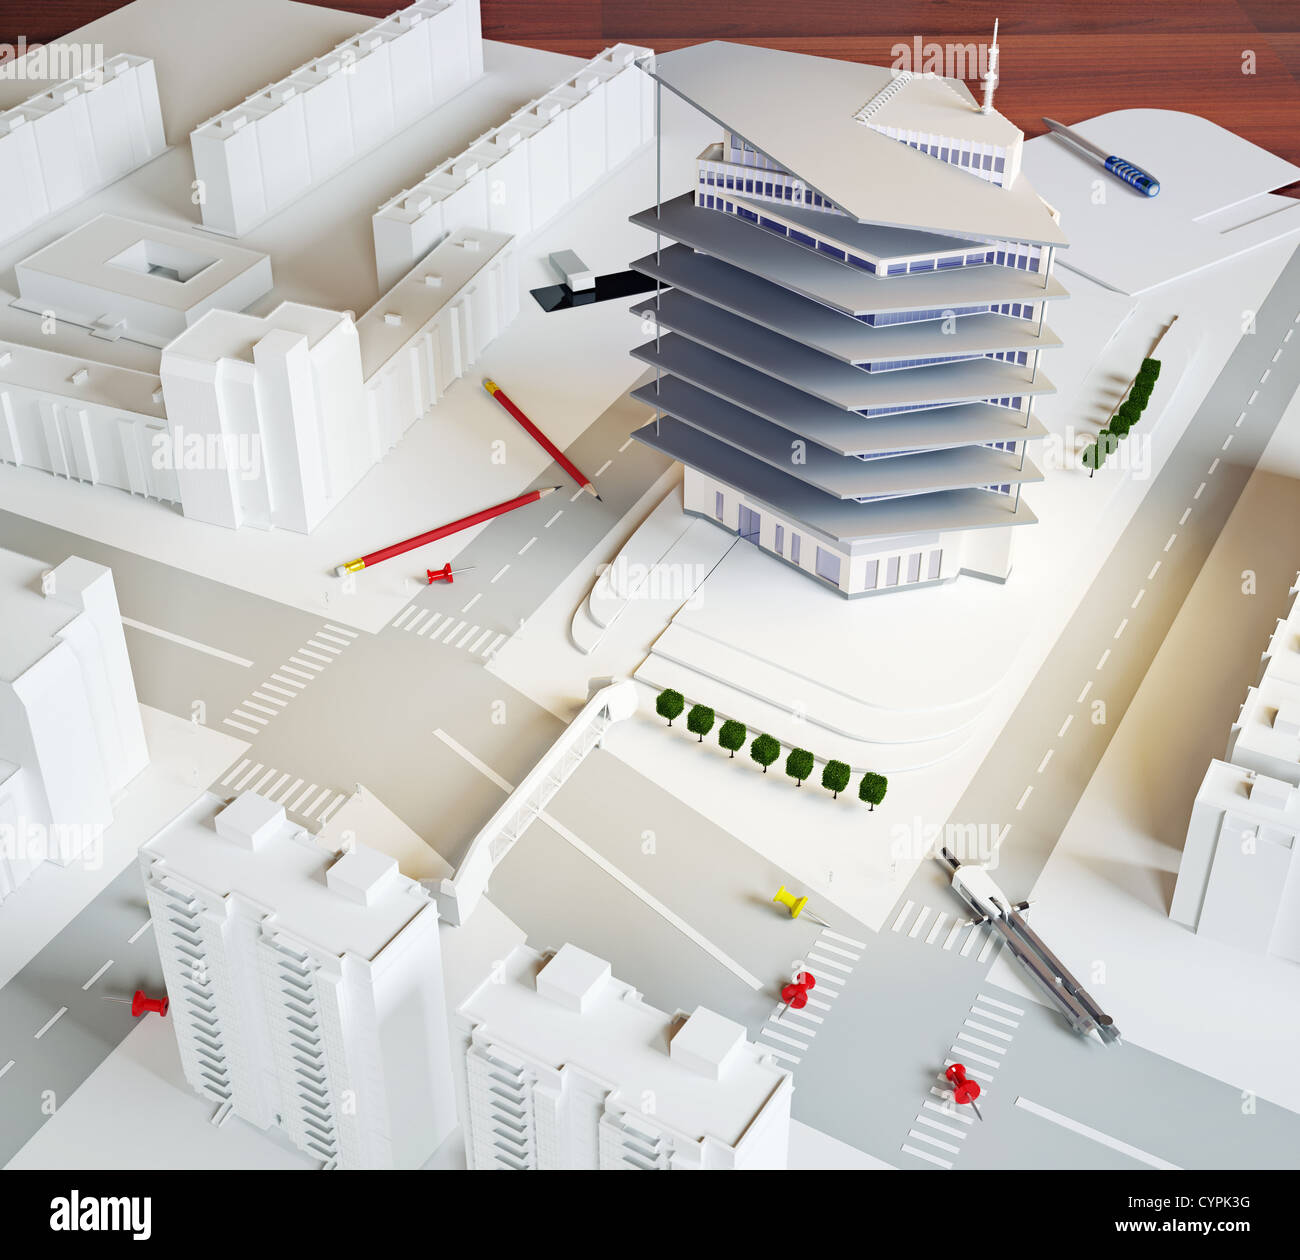 architectural model of a modern building (illustration) - Stock Image